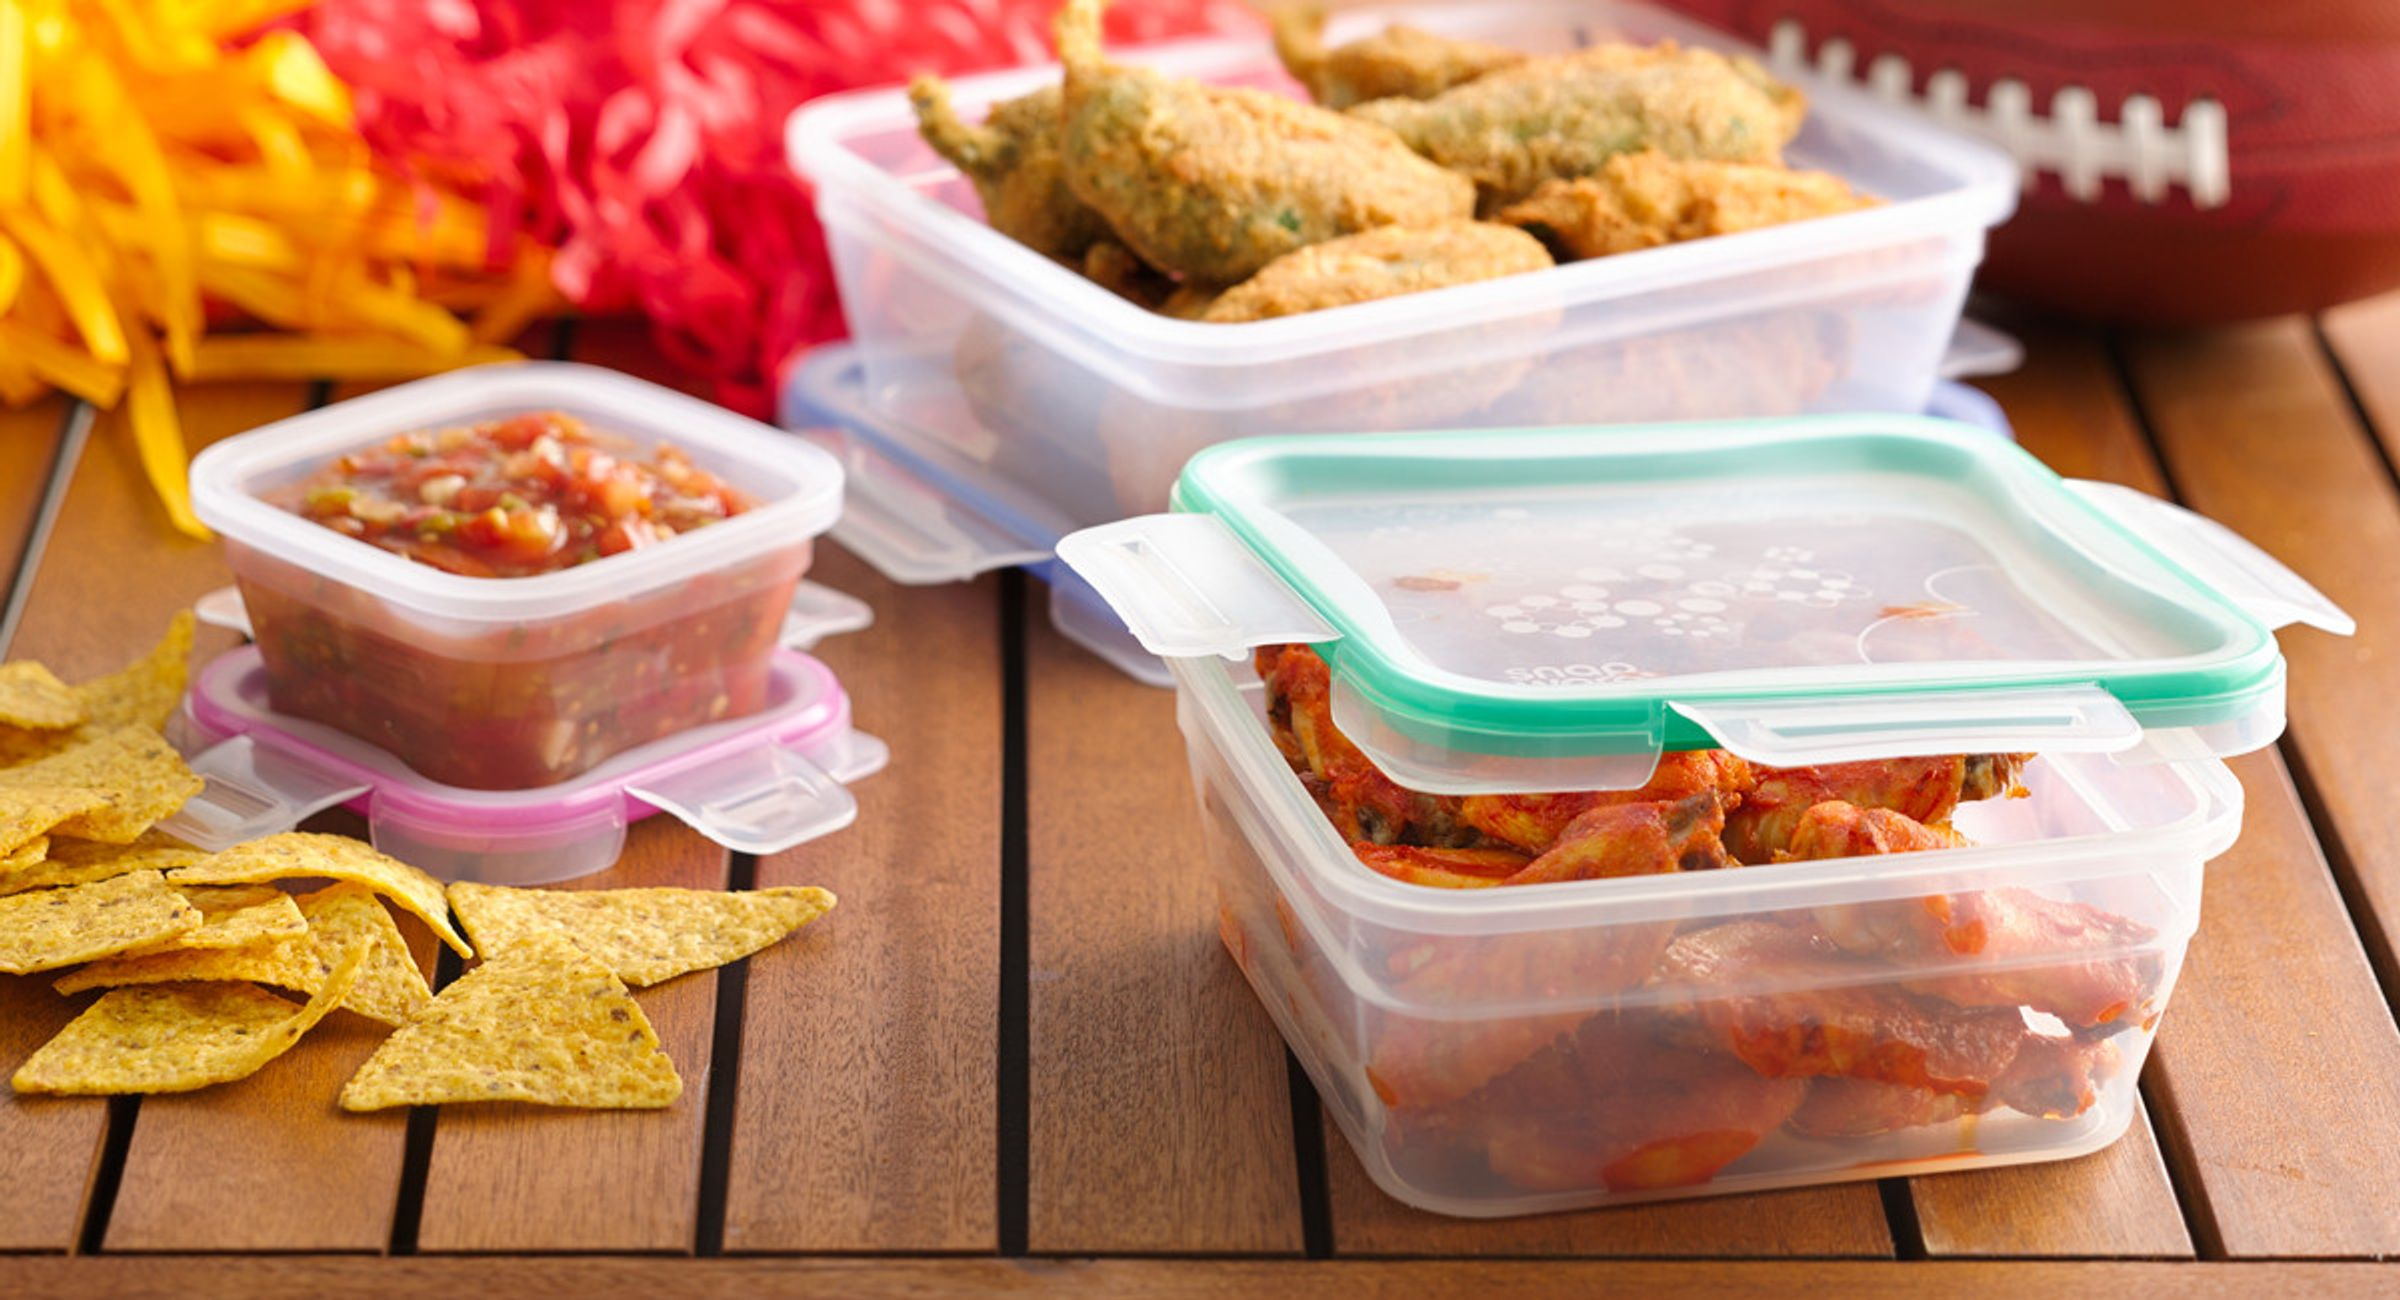 Score Hot Eats for Tailgating